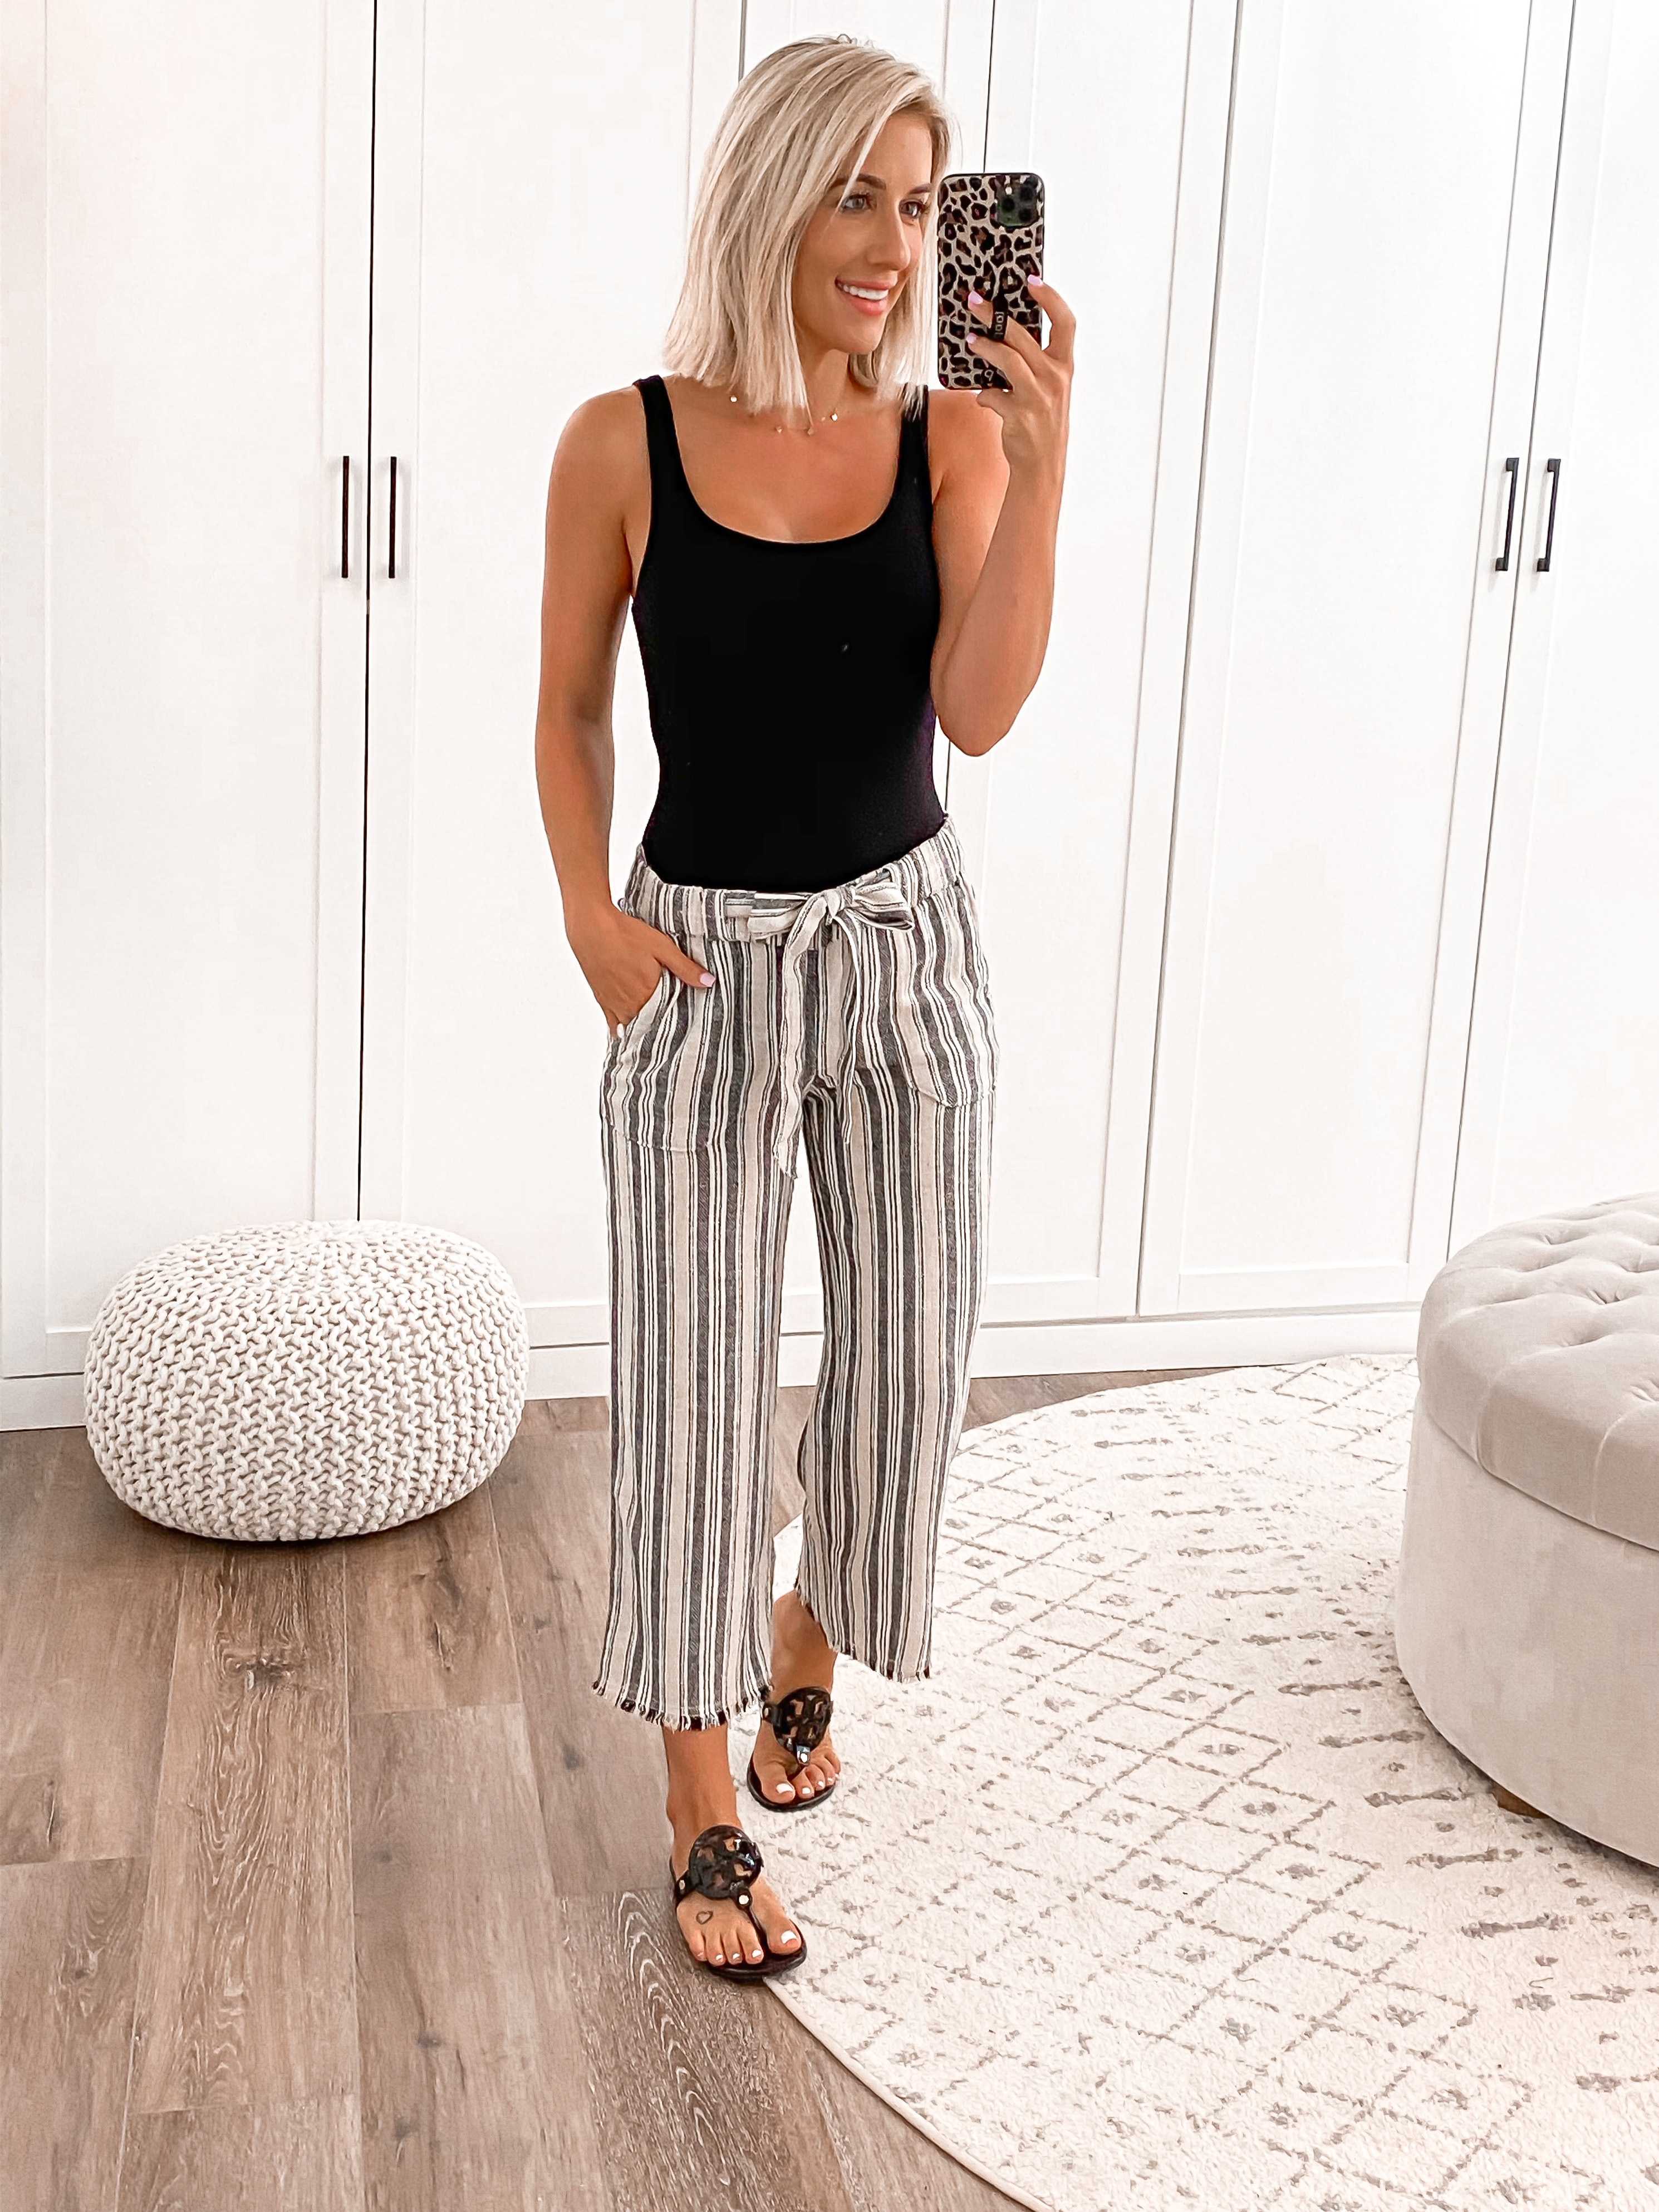 Laura Beverlin casual summer outfit idea nordstrom rack